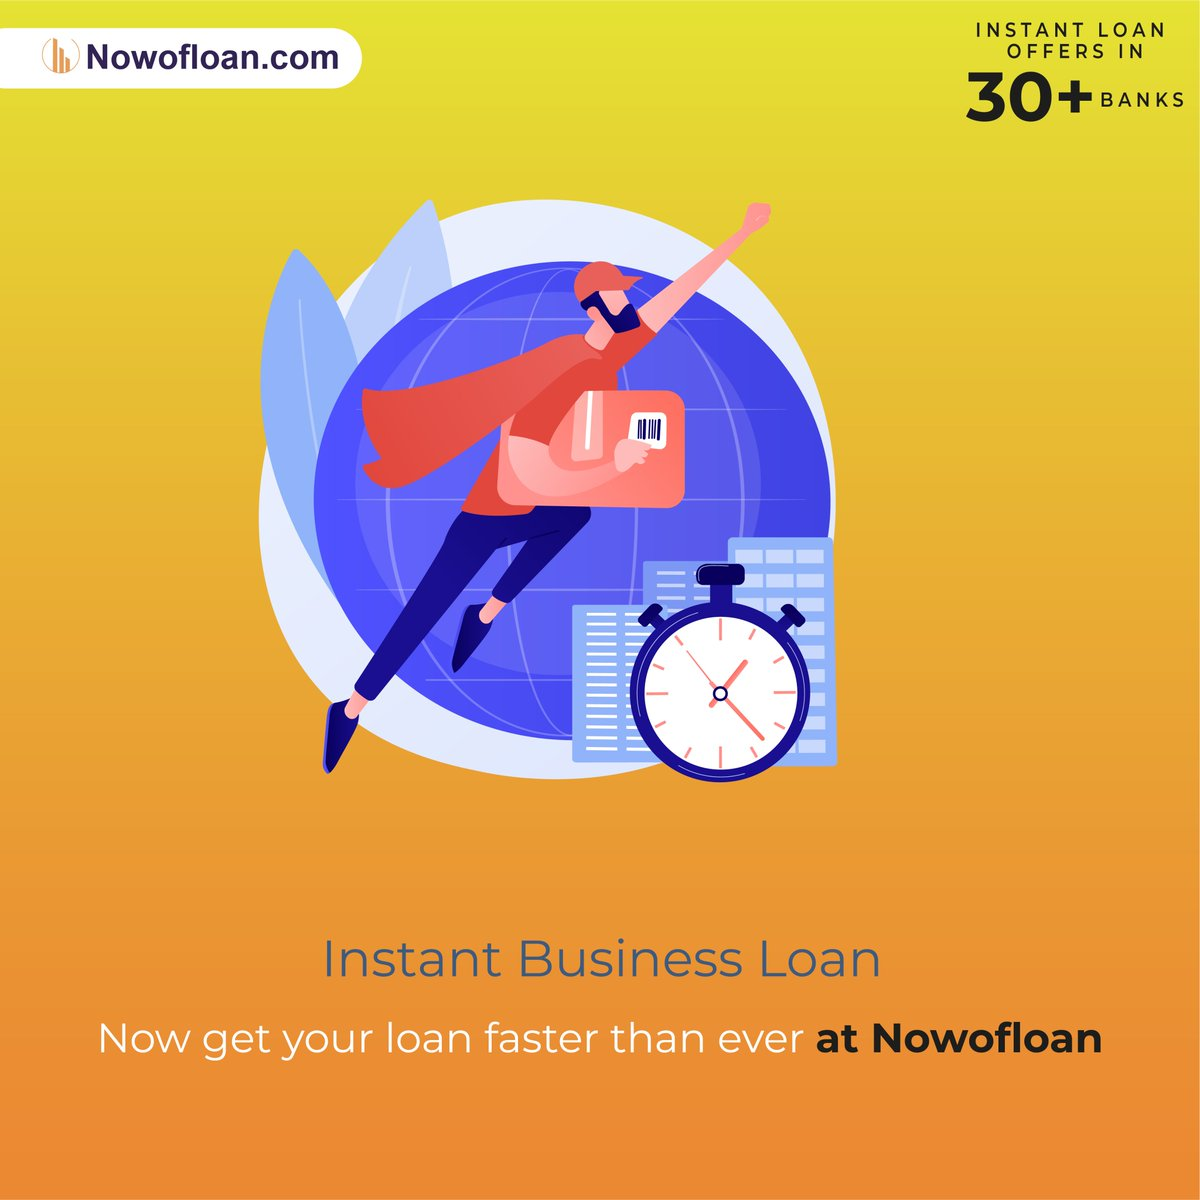 Instant business loan now get your loan faster than ever at nowofloan   apply now - -https://t.co/GsQfkeqddg   For more info call now - +91 9081545972   #services #opportunity #smallbusinessowner #extraincome #work  #support #impact #businessowner  #womeninbusiness #entrepreneu https://t.co/6dgTaP8Ph9